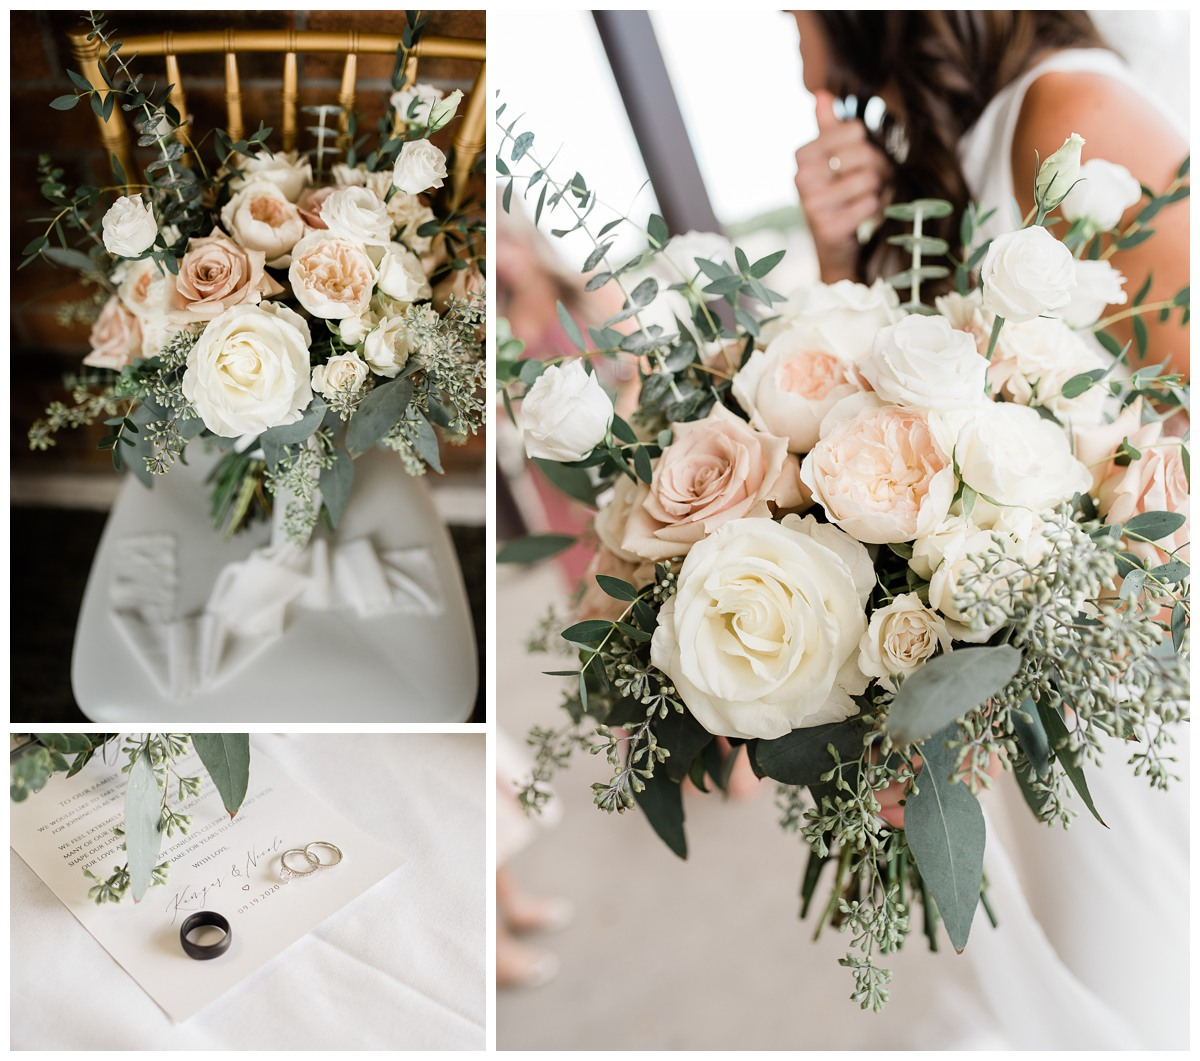 Stunning elegant bouquet of peach garden roses and eucalyptus for Royal Ashburn wedding in Whitby